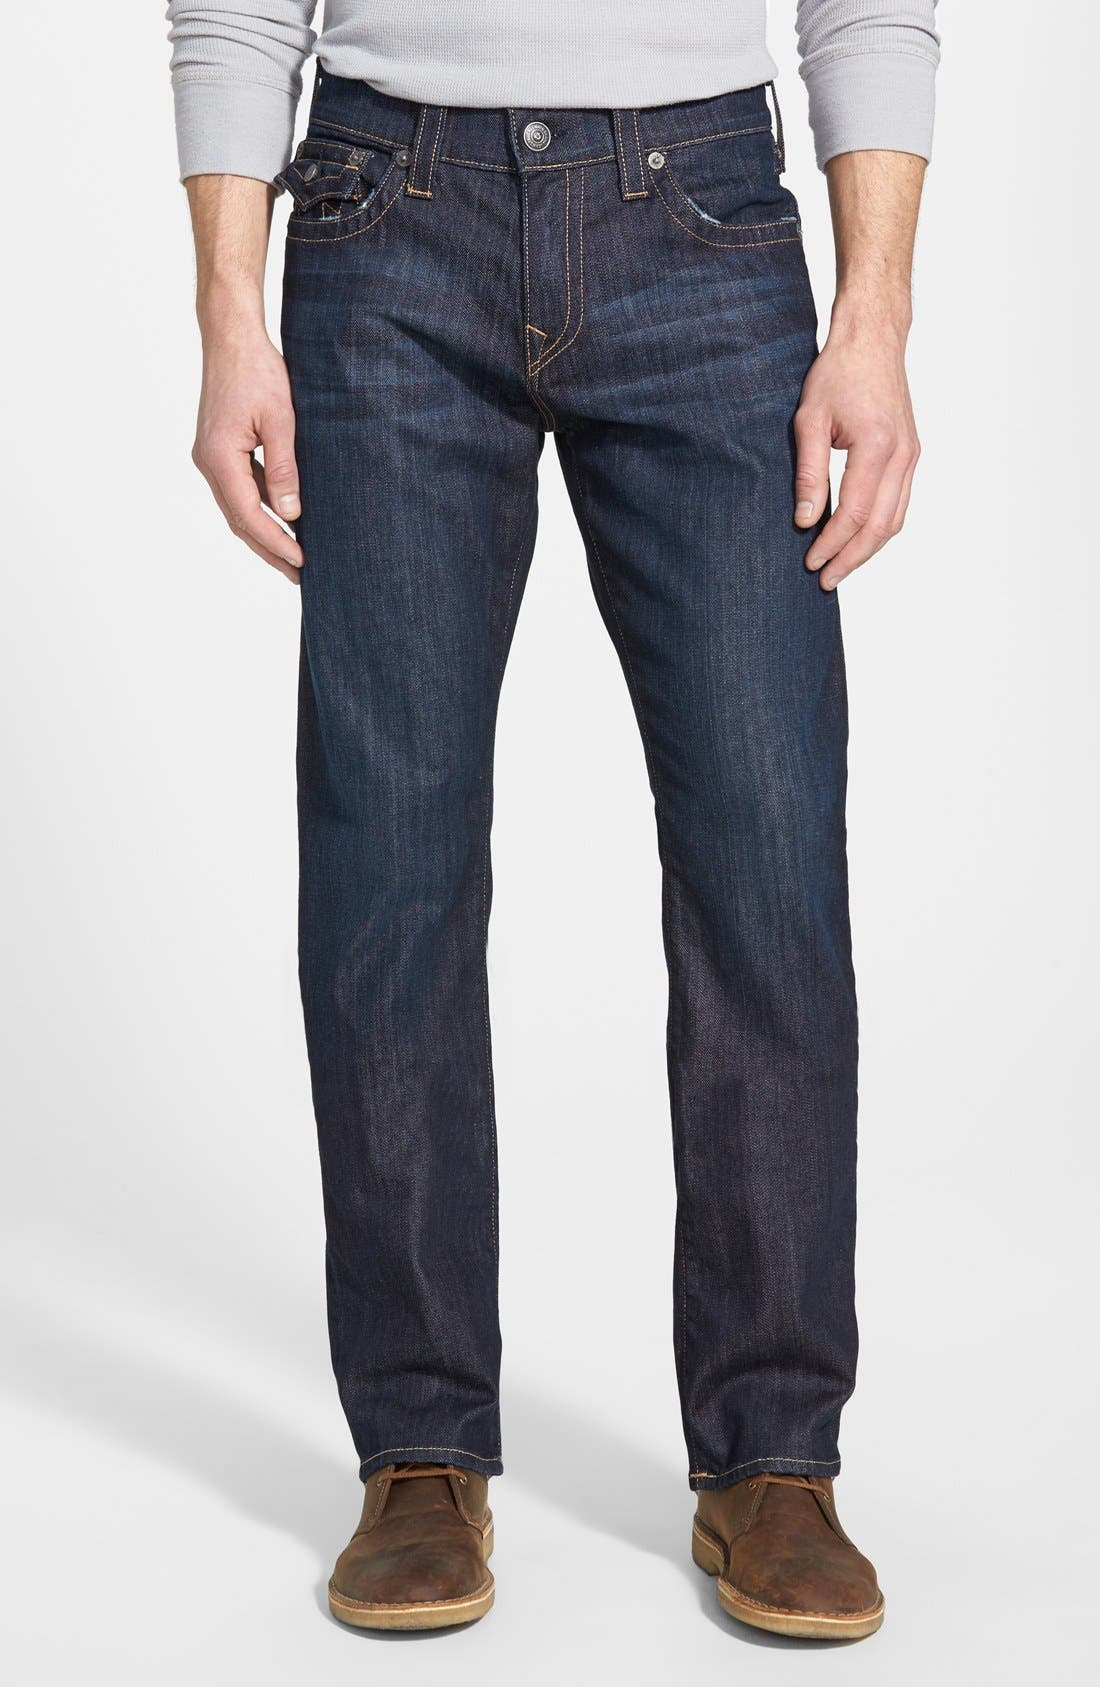 Alternate Image 1 Selected - True Religion Brand Jeans 'Ricky' Relaxed Fit Jeans (Wanted Man)